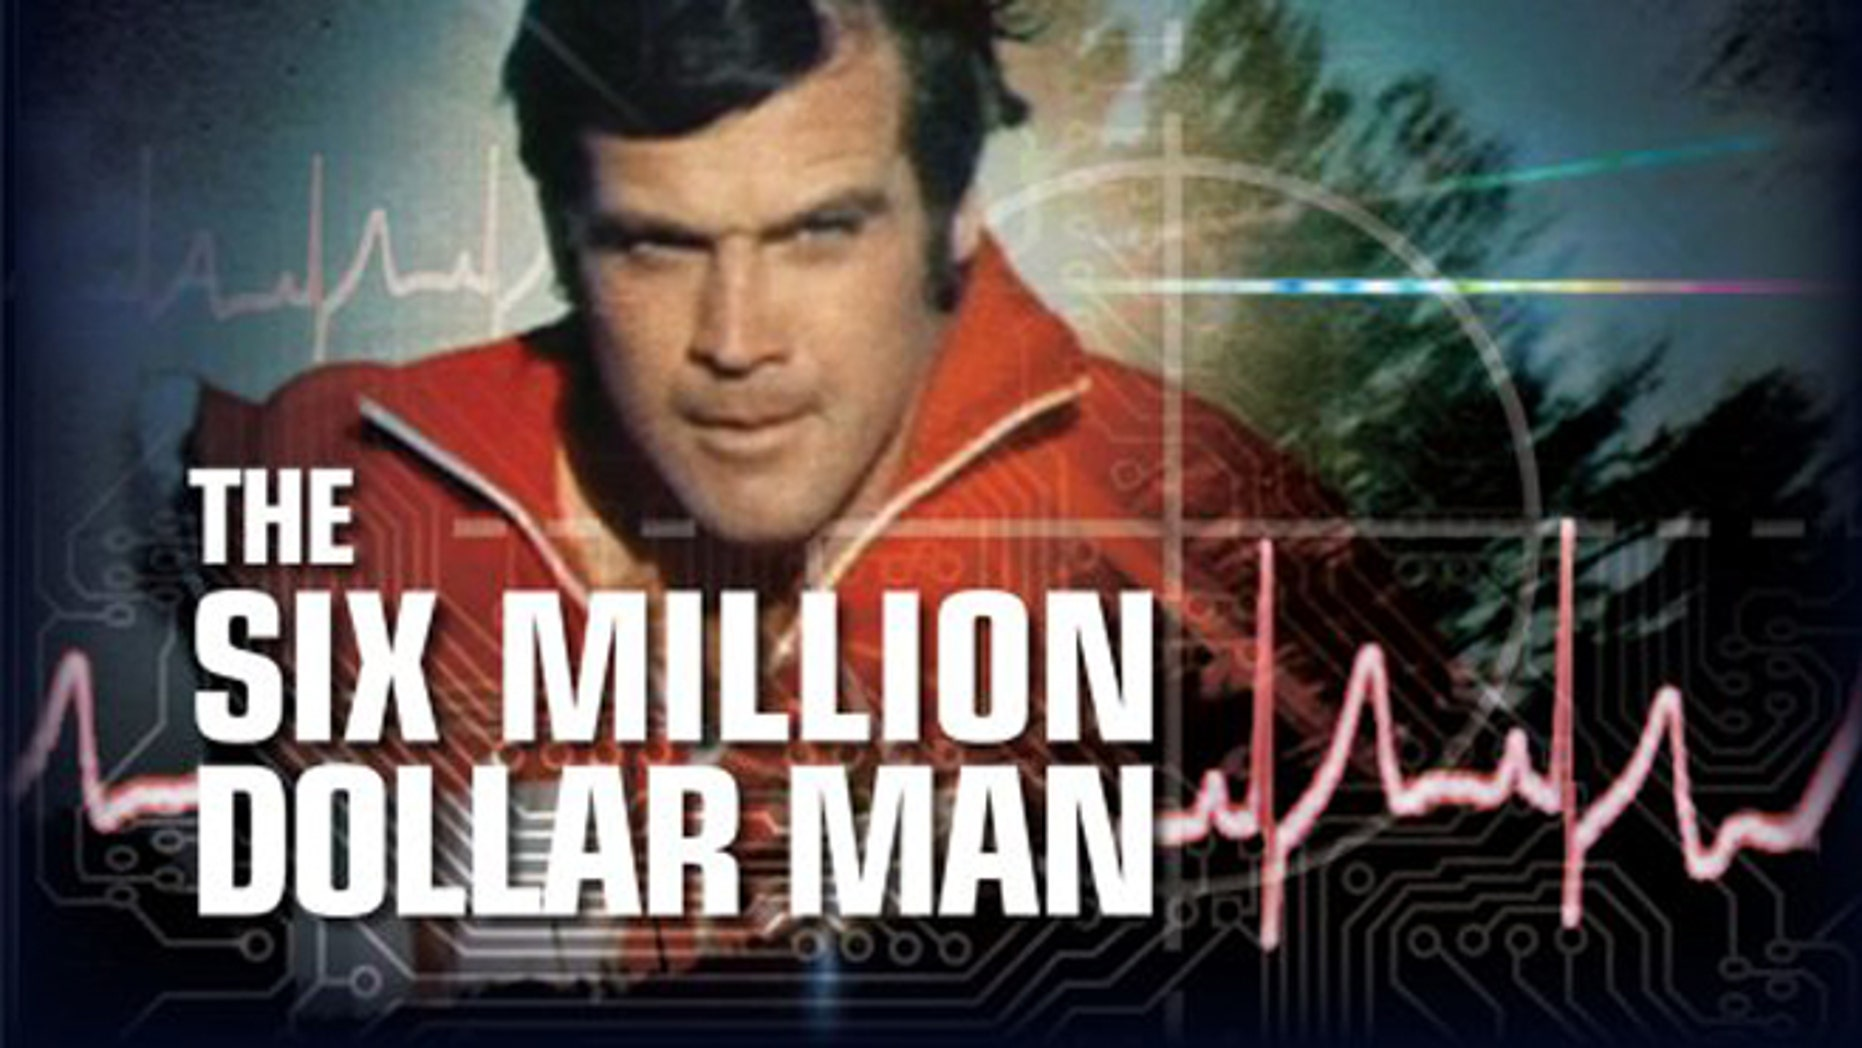 """The title screen from """"The Six Million Dollar Man,"""" a popular TV series from the 1970s."""